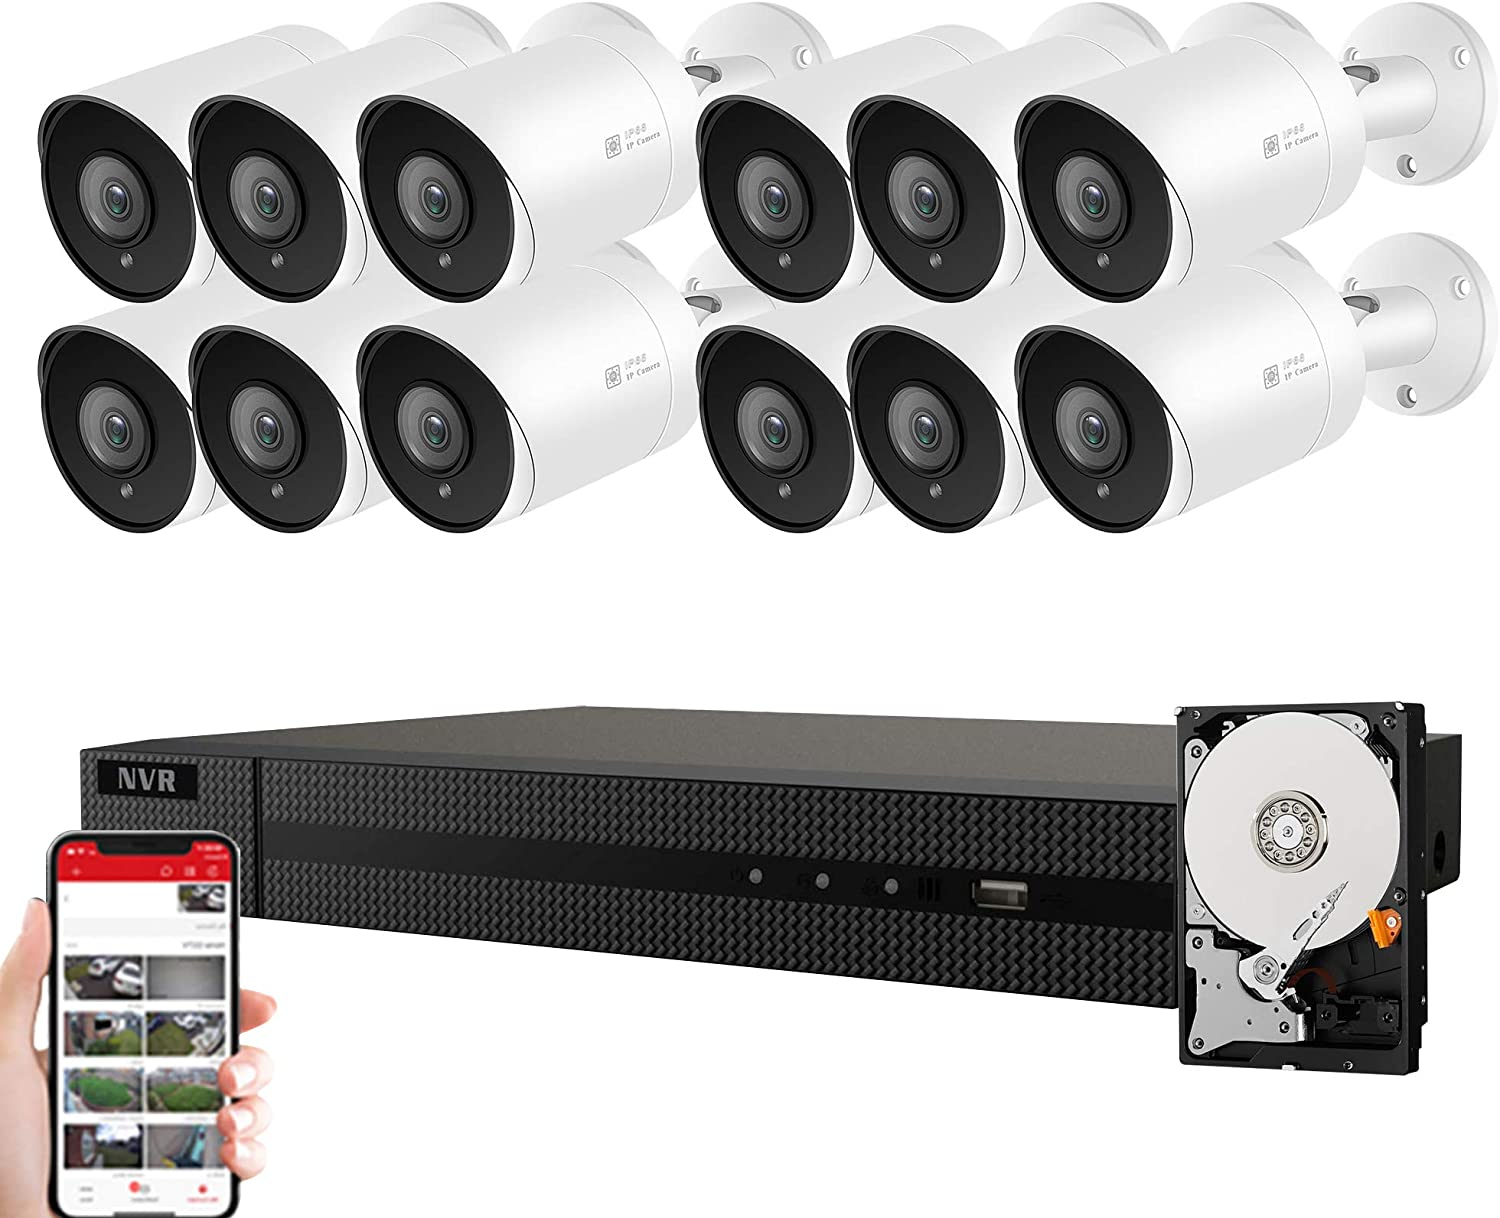 Anpviz 5MP IP POE Security Camera System, 16CH 4K H.265 NVR with 4TB HDD with (12) 5MP Outdoor IP POE Bullet Cameras Home Security System with Audio, 98ft Night Vision, IVMS4200, Hik-Connect